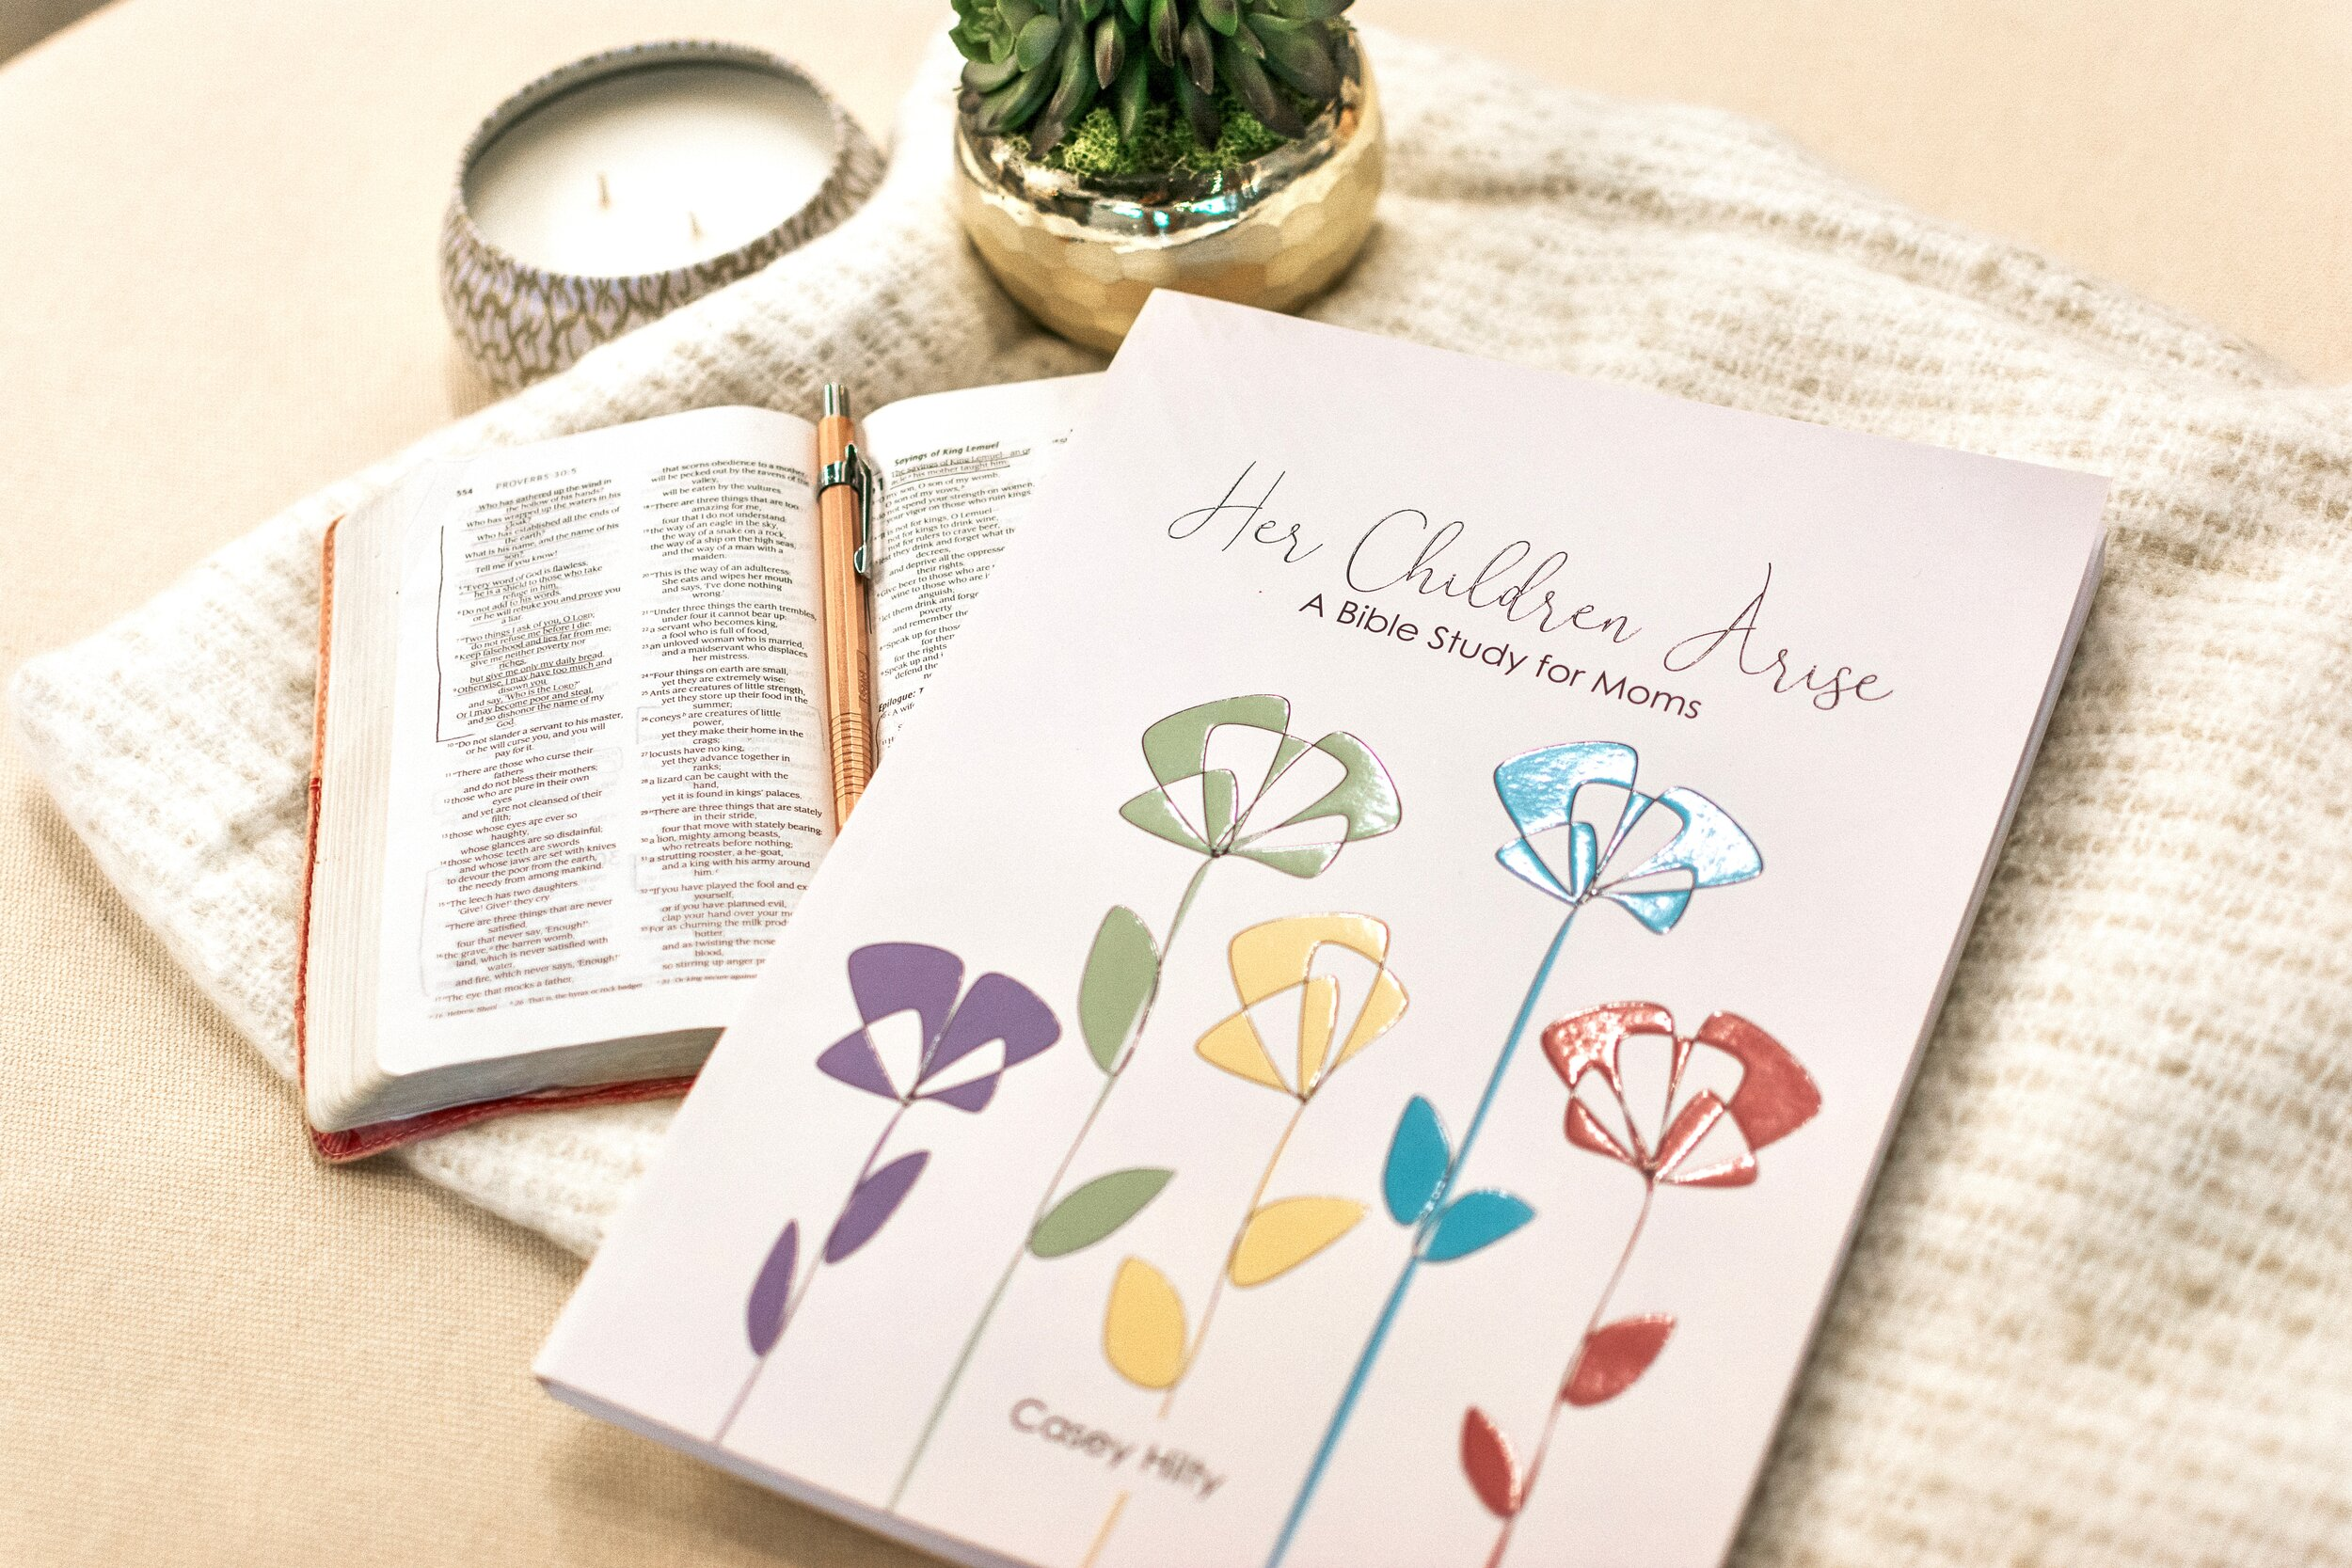 Her Children Arise - THIS STUDY CURRICULUM INCLUDES:· 5-week Bible study with 5 lessons each· 6-session video series· Wrap-up days with discussion questions· Bible memory verses· 5 Family Faith Activities